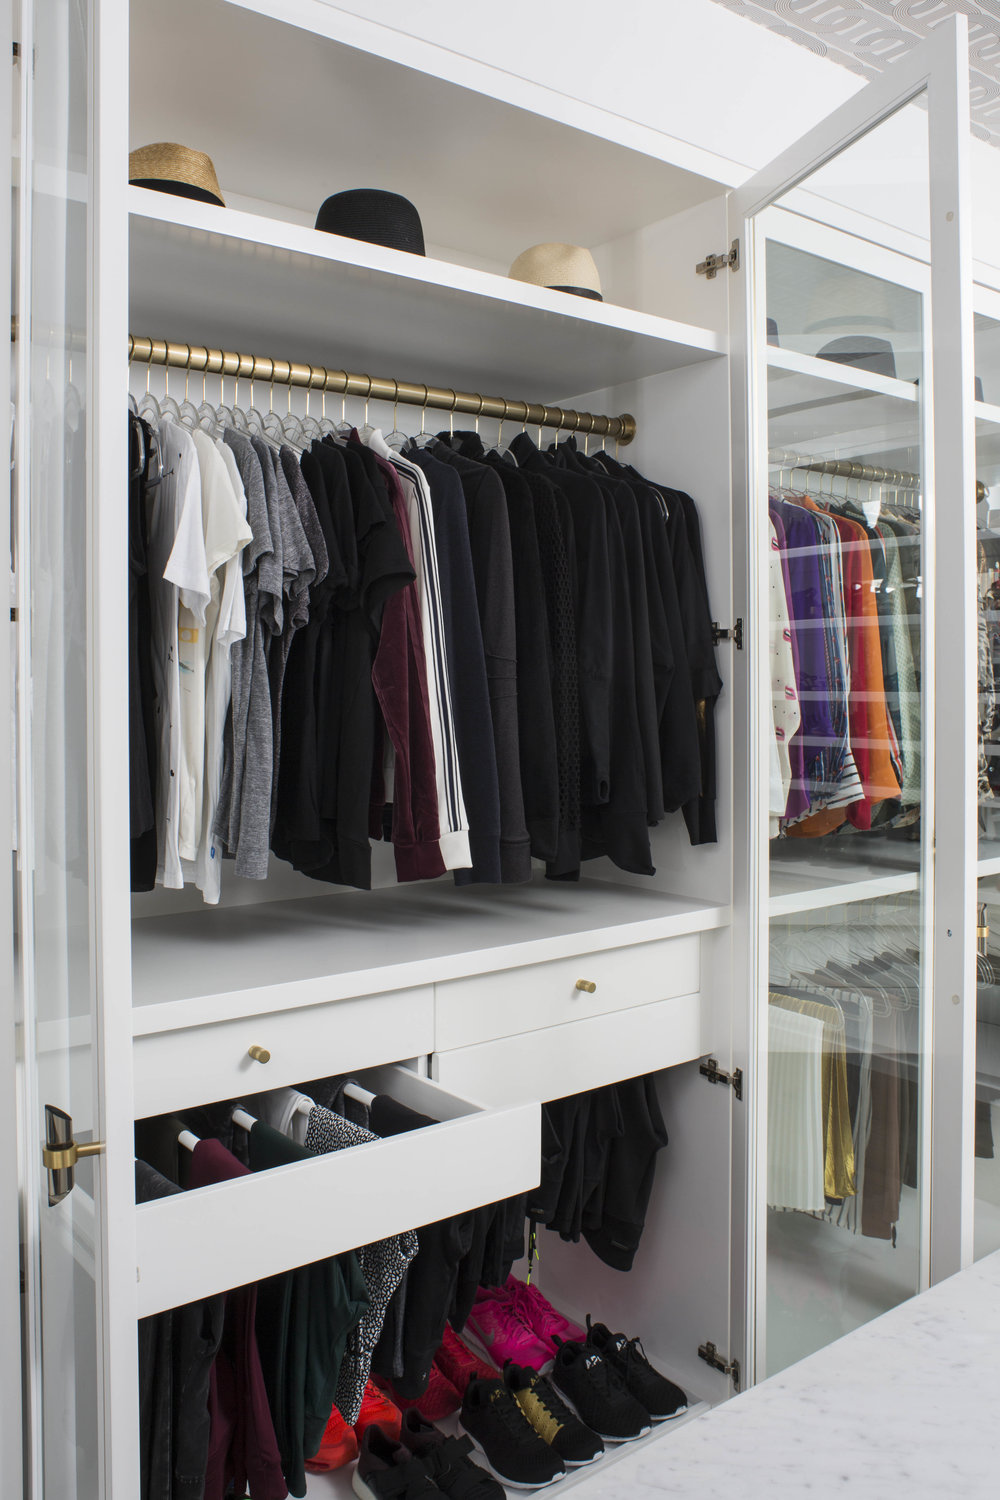 A DEDICATED WORKOUT CABINET INCORPORATES A PULL-OUT RACK FOR LEGGINGS AND SNEAKER STORAGE BELOW!